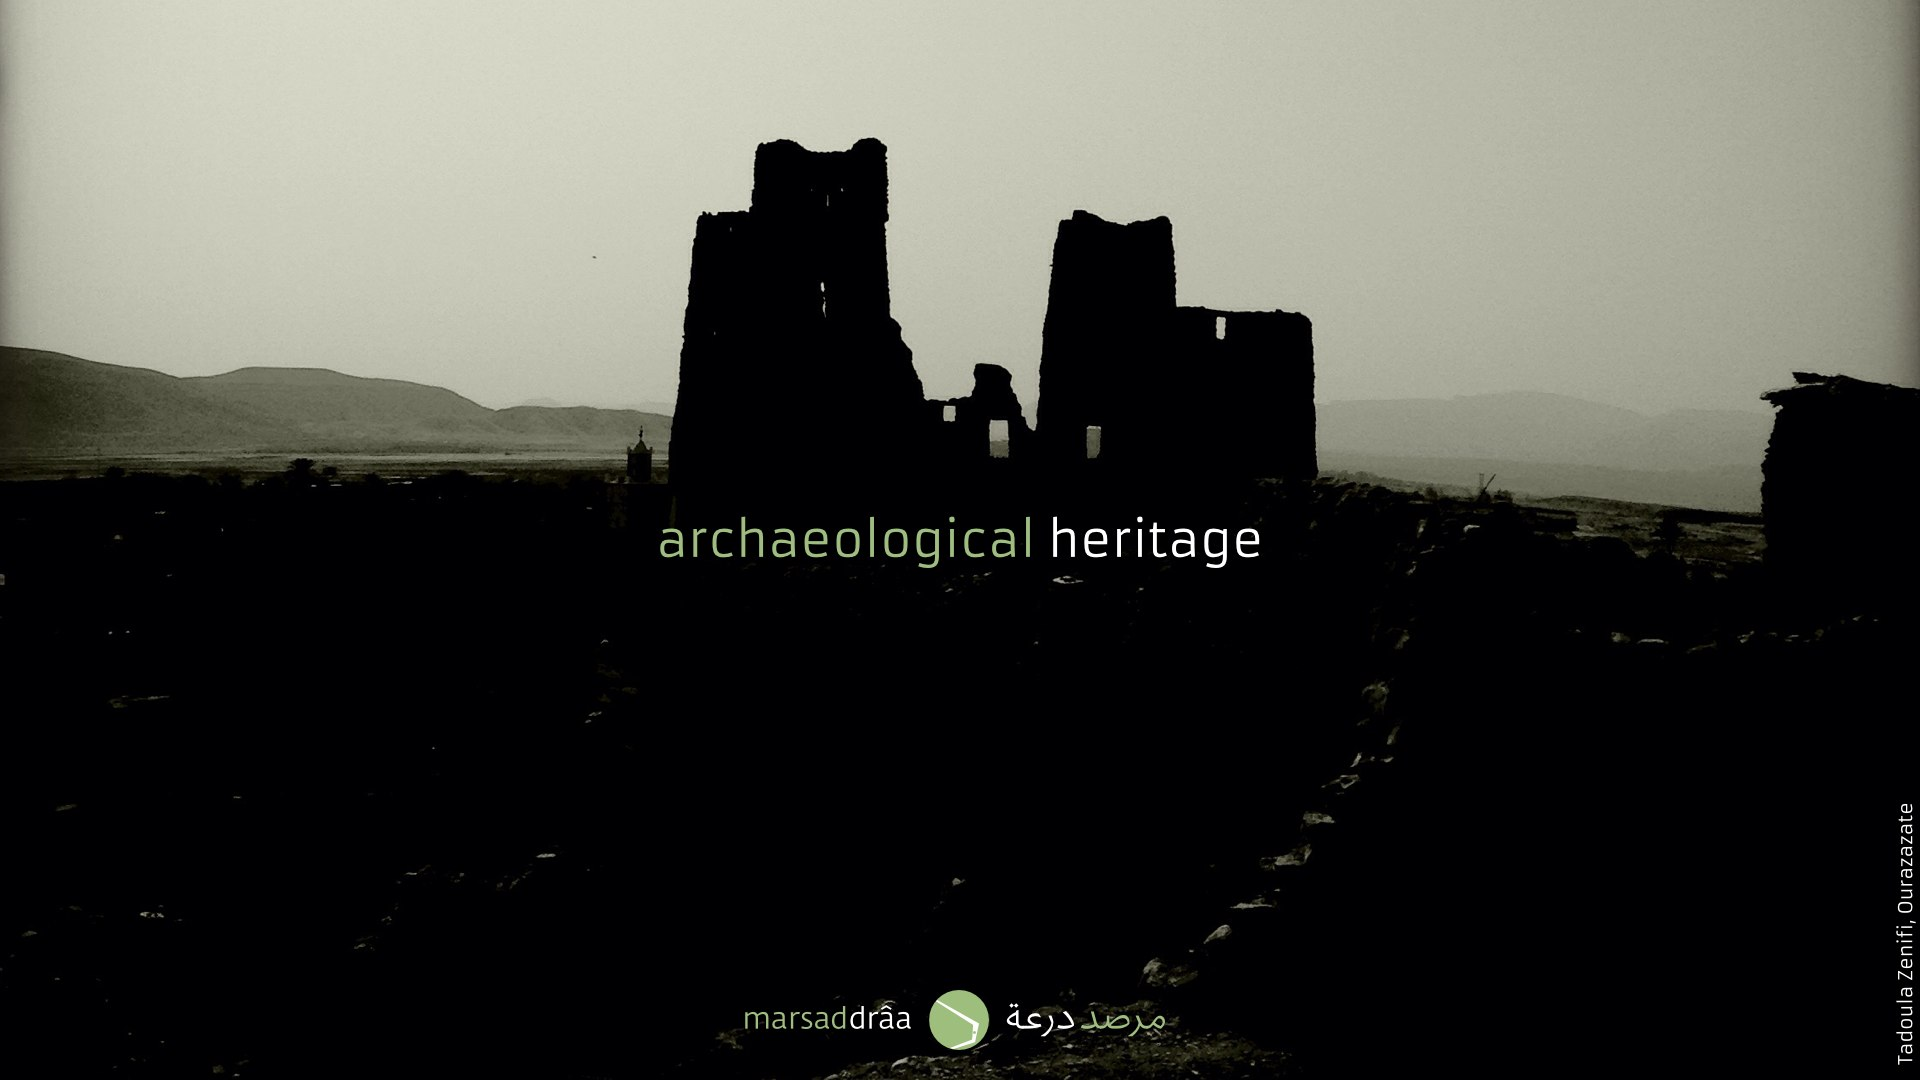 But also we will better understand the archaeological and architectural heritage and the values of traditional construction systems.